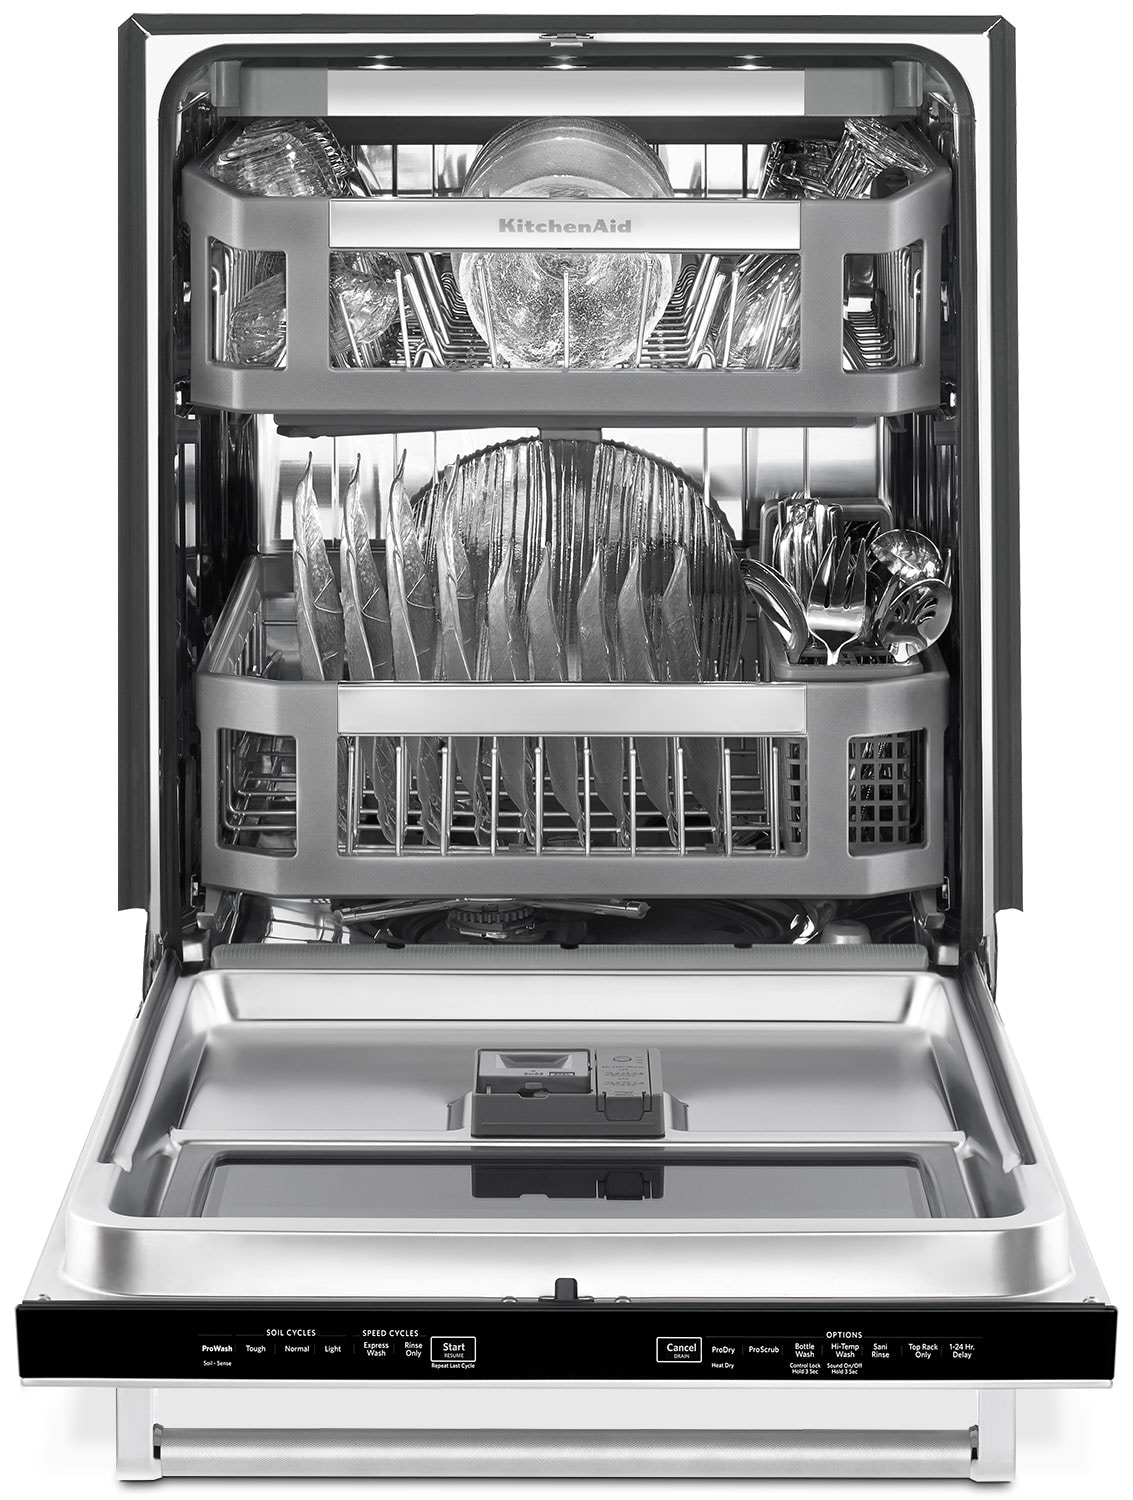 Kitchenaid 24 dishwasher with window and lighted interior - Dishwasher stainless steel interior ...